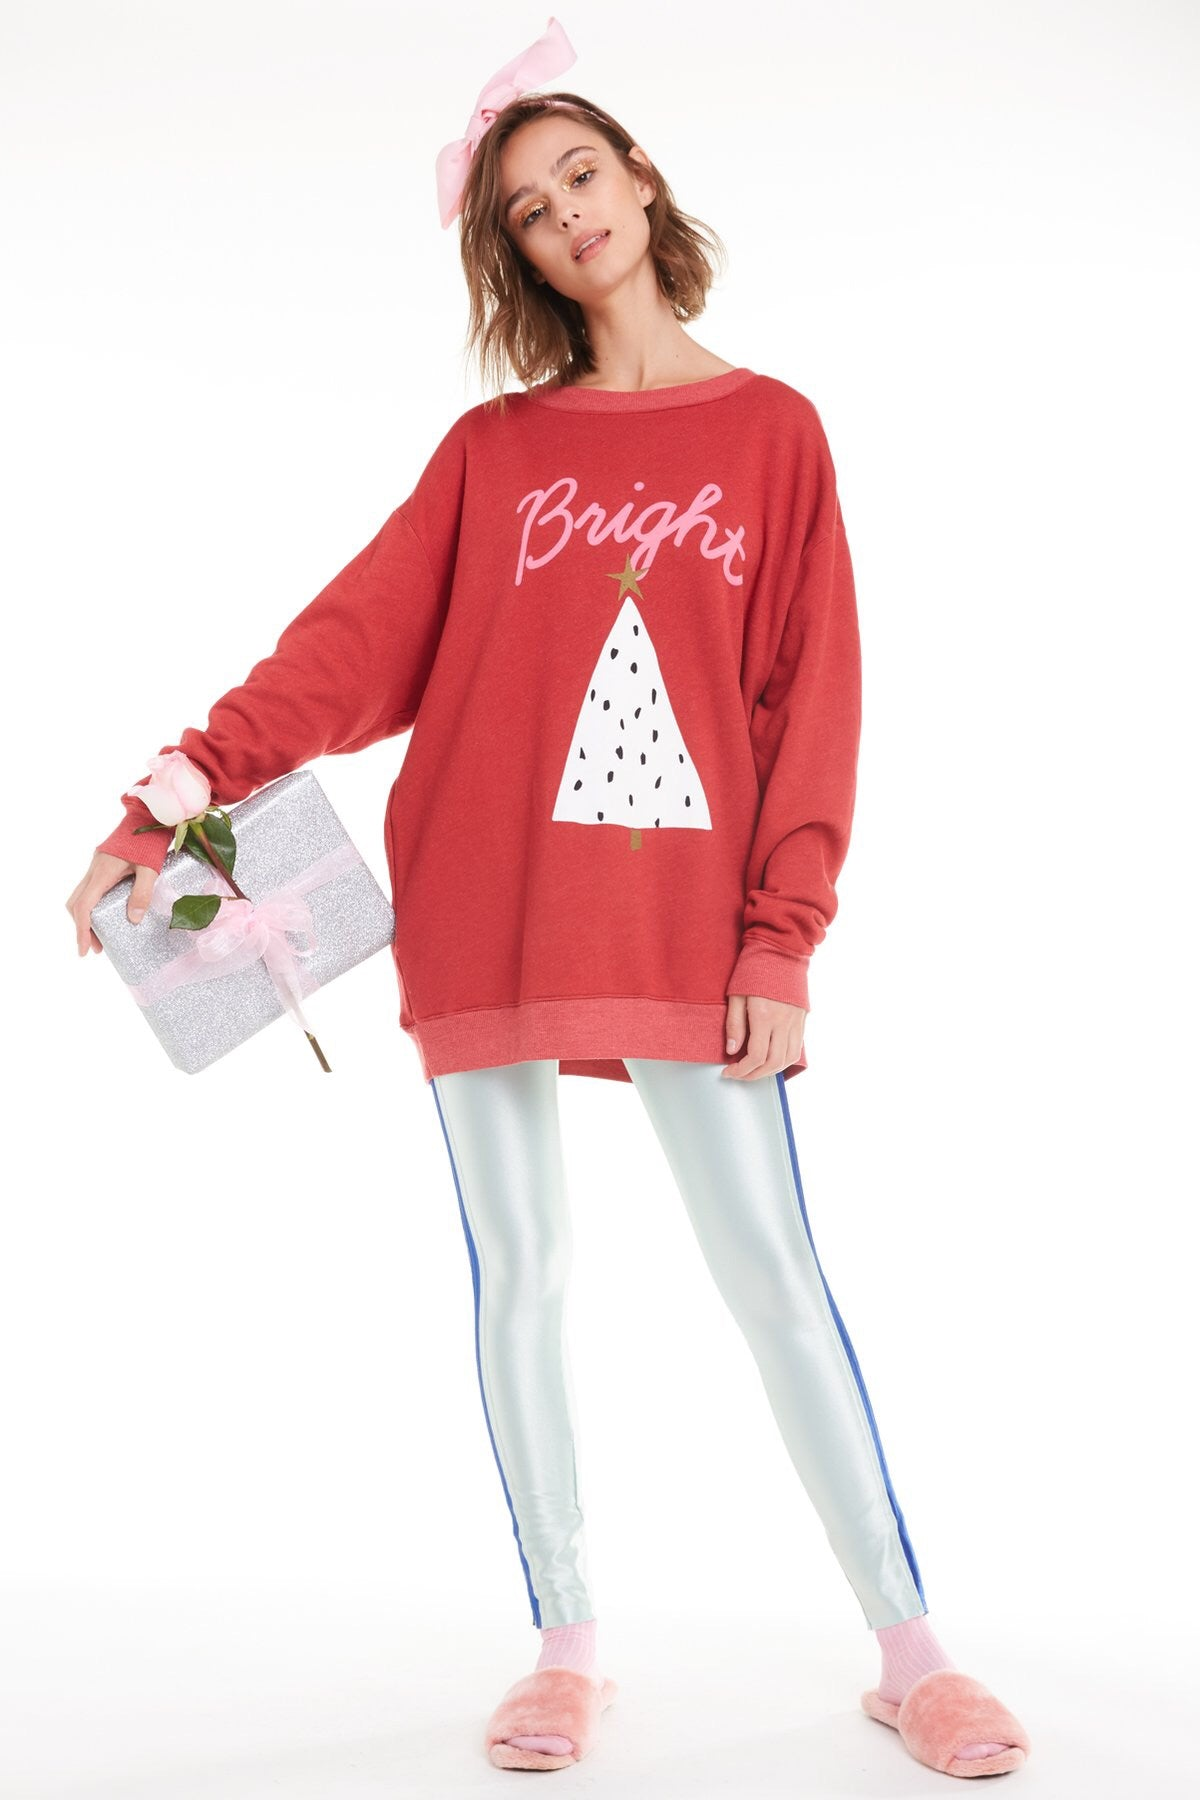 Wildfox couture Bright Sweatshirt